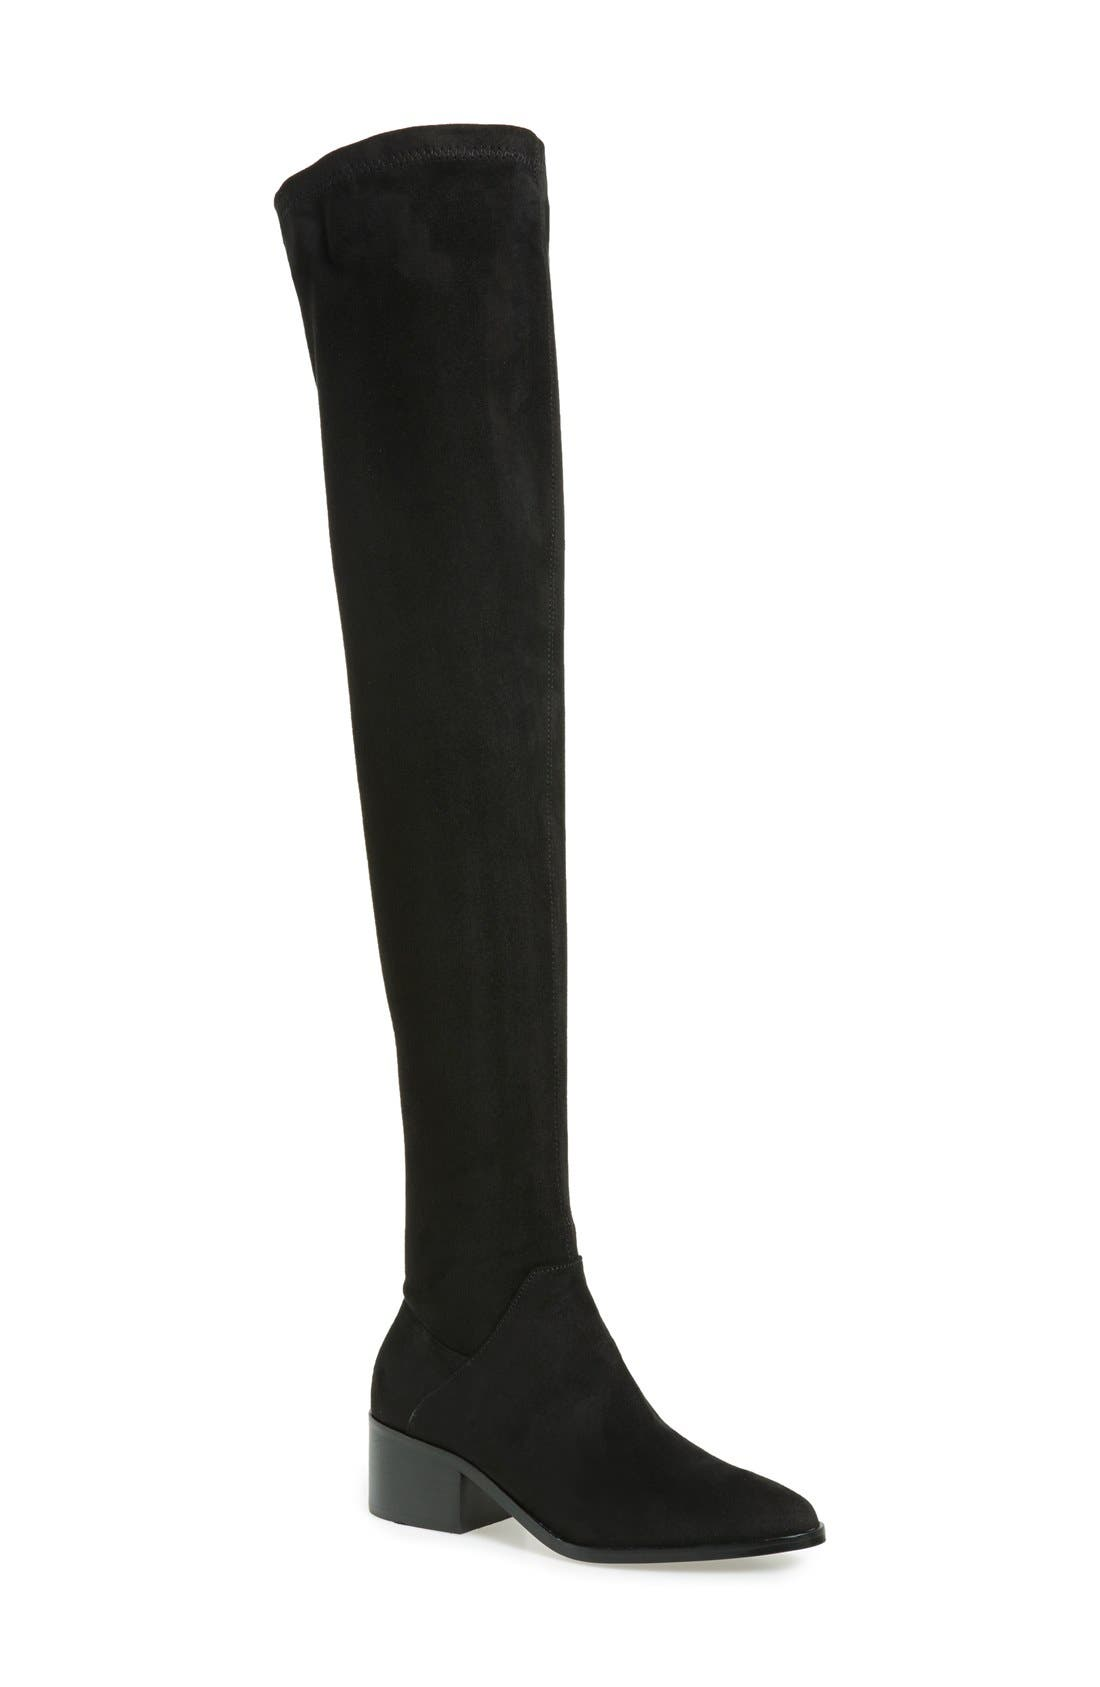 Main Image - Steve Madden Gabriana Stretch Over the Knee Boot (Women)